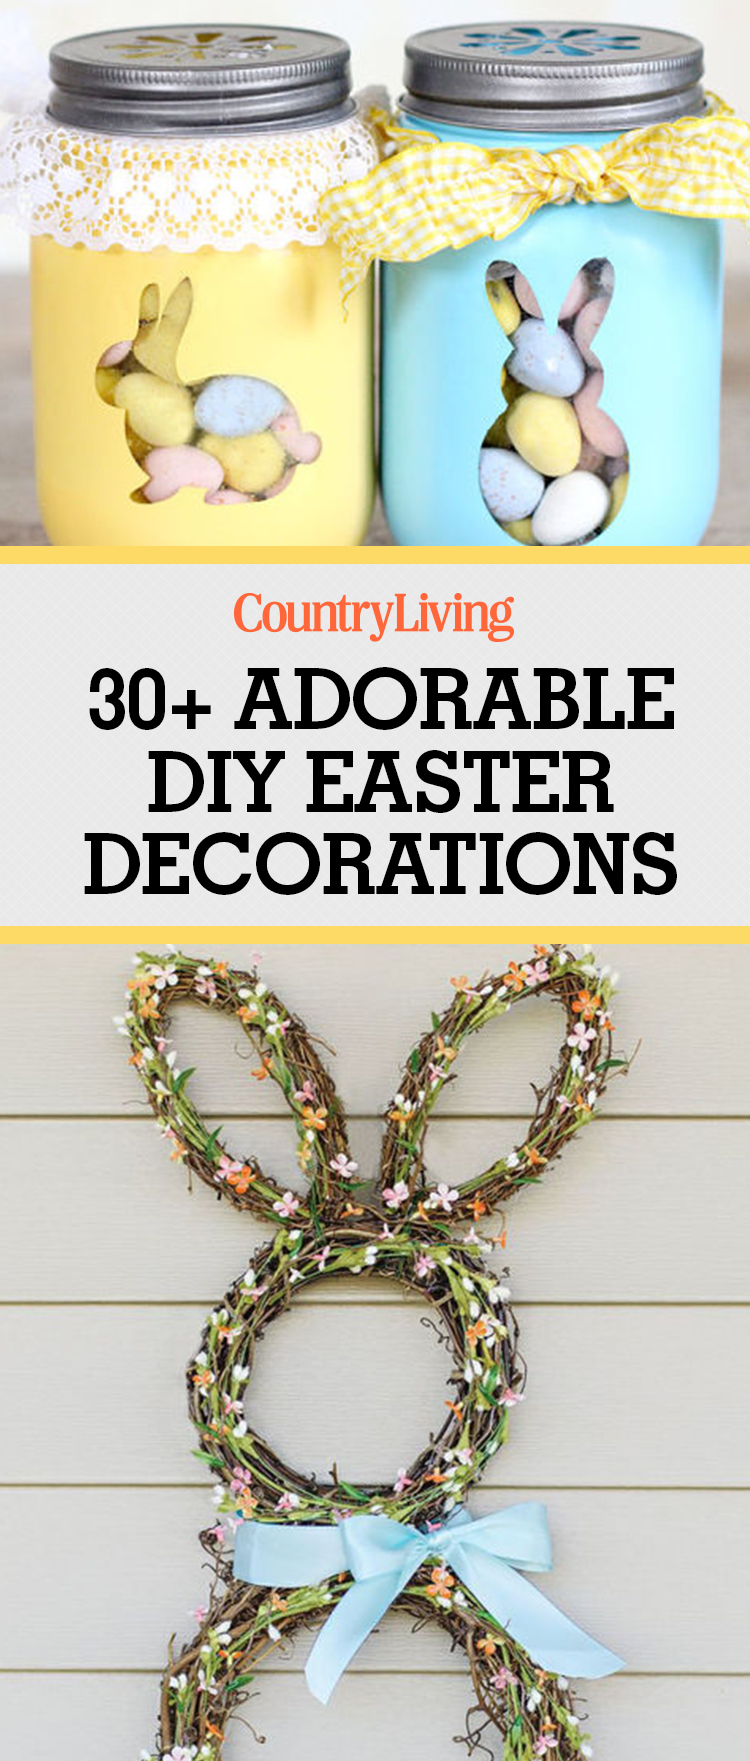 Diy Spring Decor: 30 DIY Easter Decorations From Pinterest